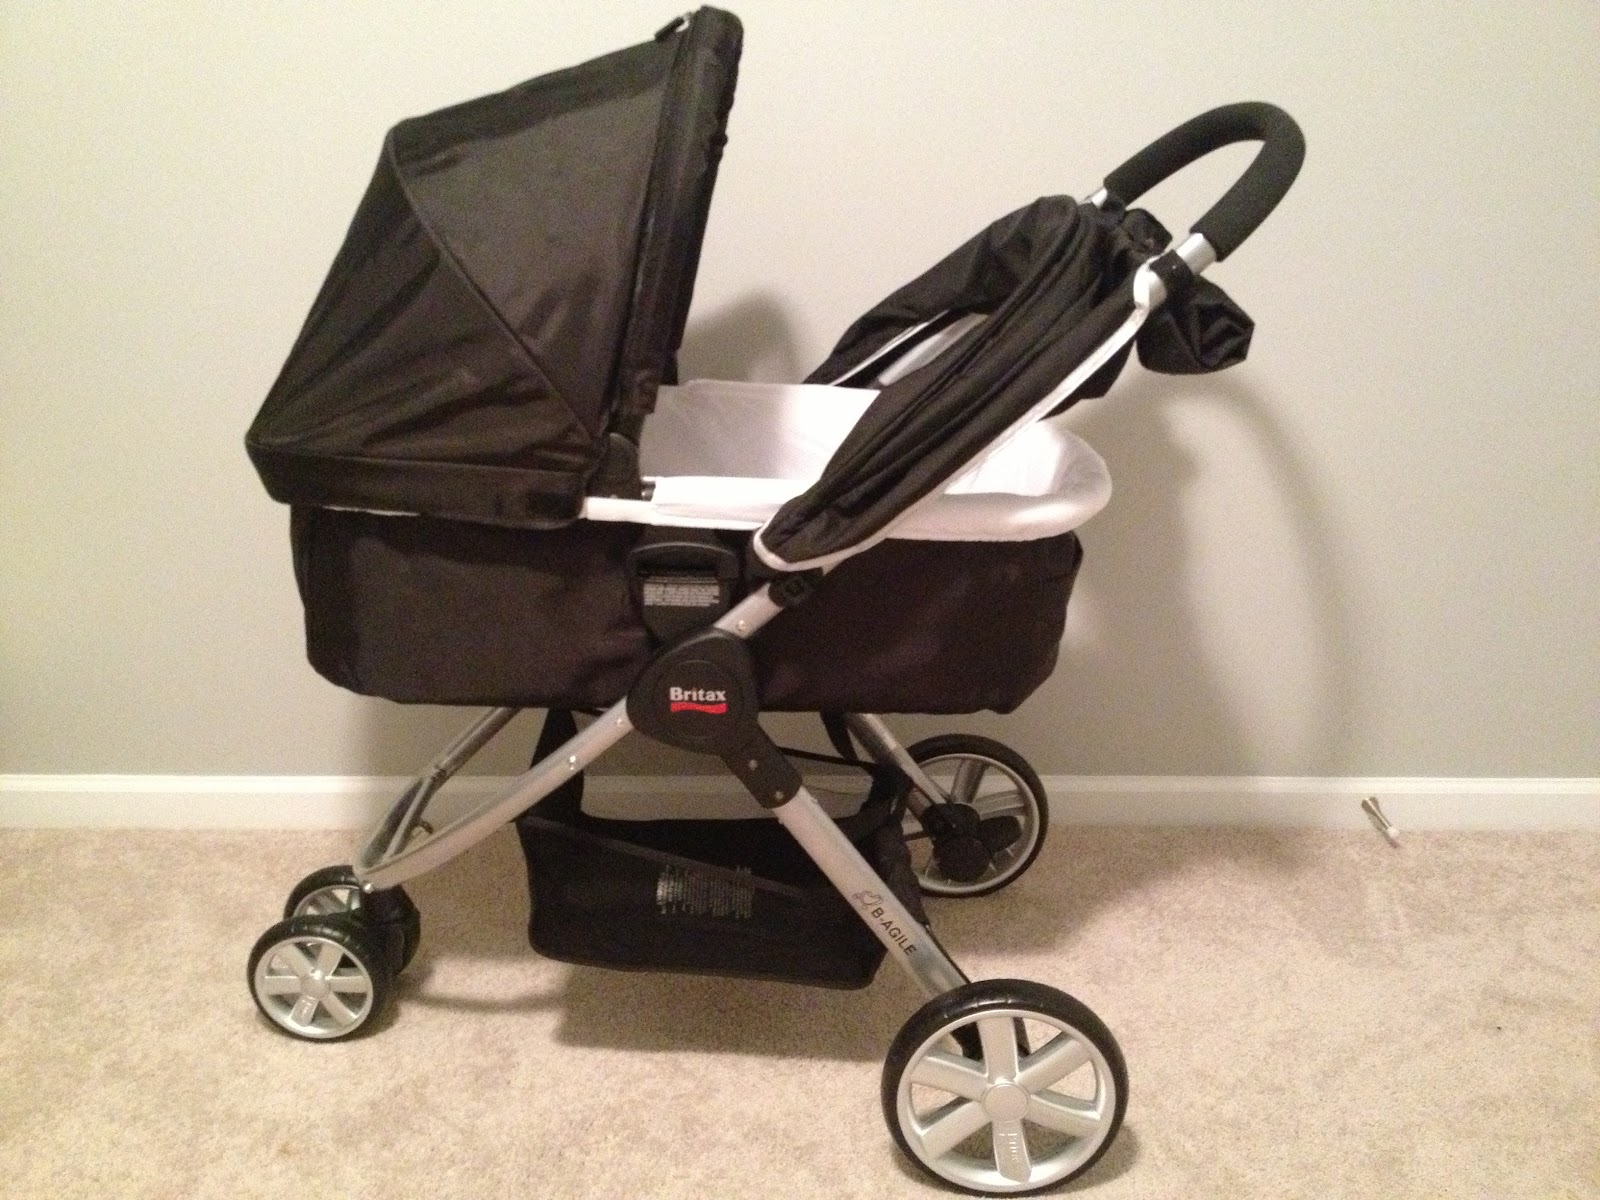 Britax Car Seat Travel System Makeup By Marilu Choosing Our Stroller Review Part 2